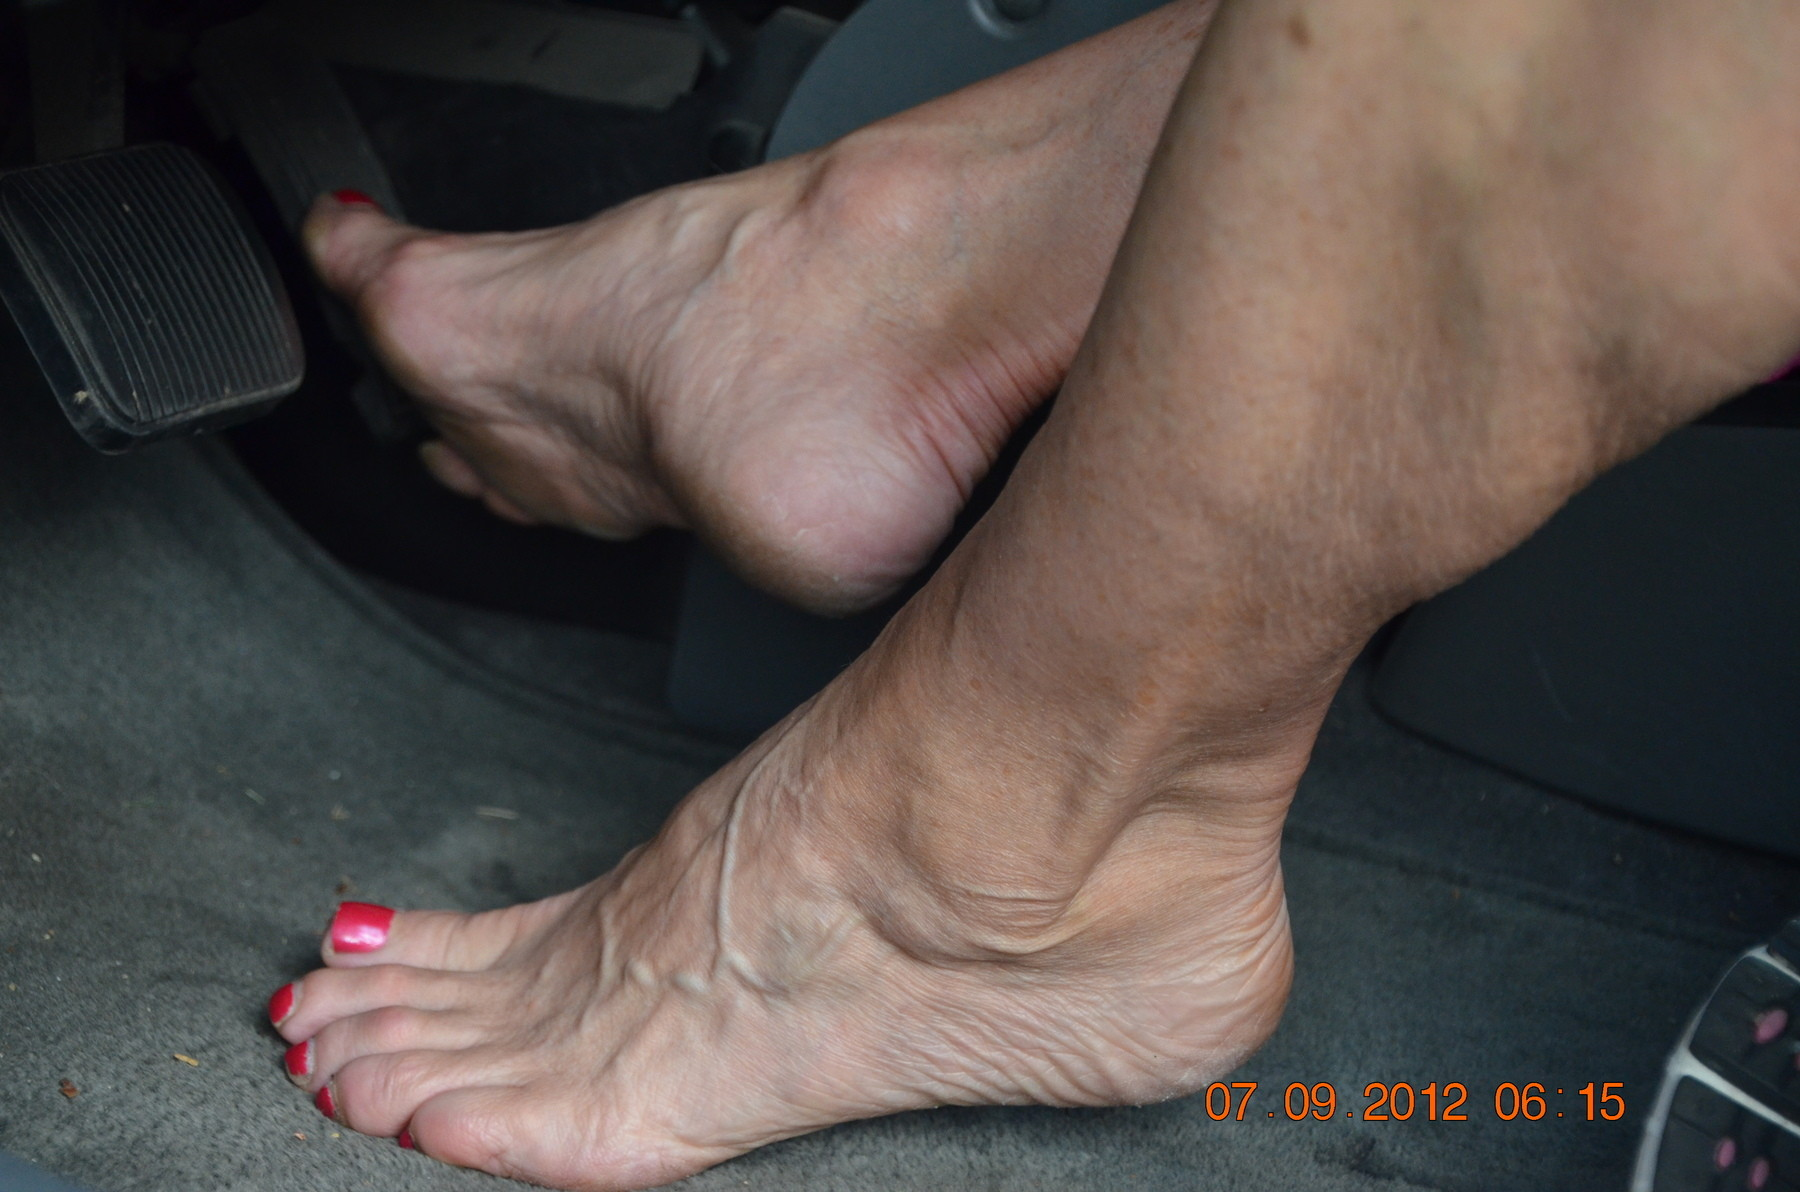 Foot worship mature you